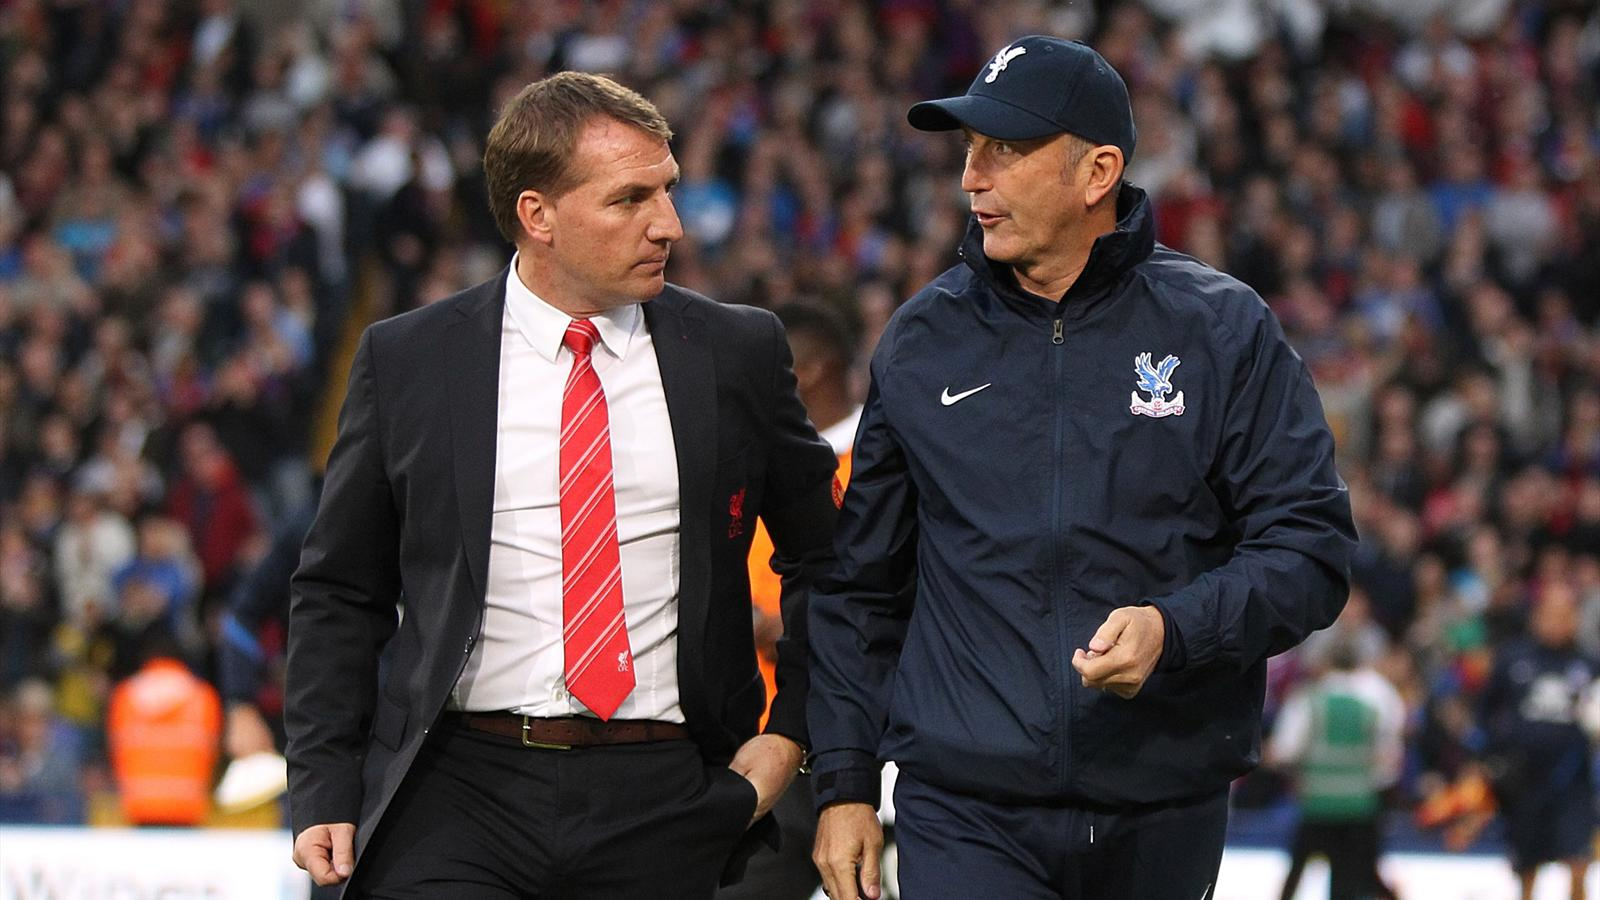 Liverpool manager Brendan Rodgers (left) with Crystal Palace manager Tony Pulis before kick-off (PA Photos)